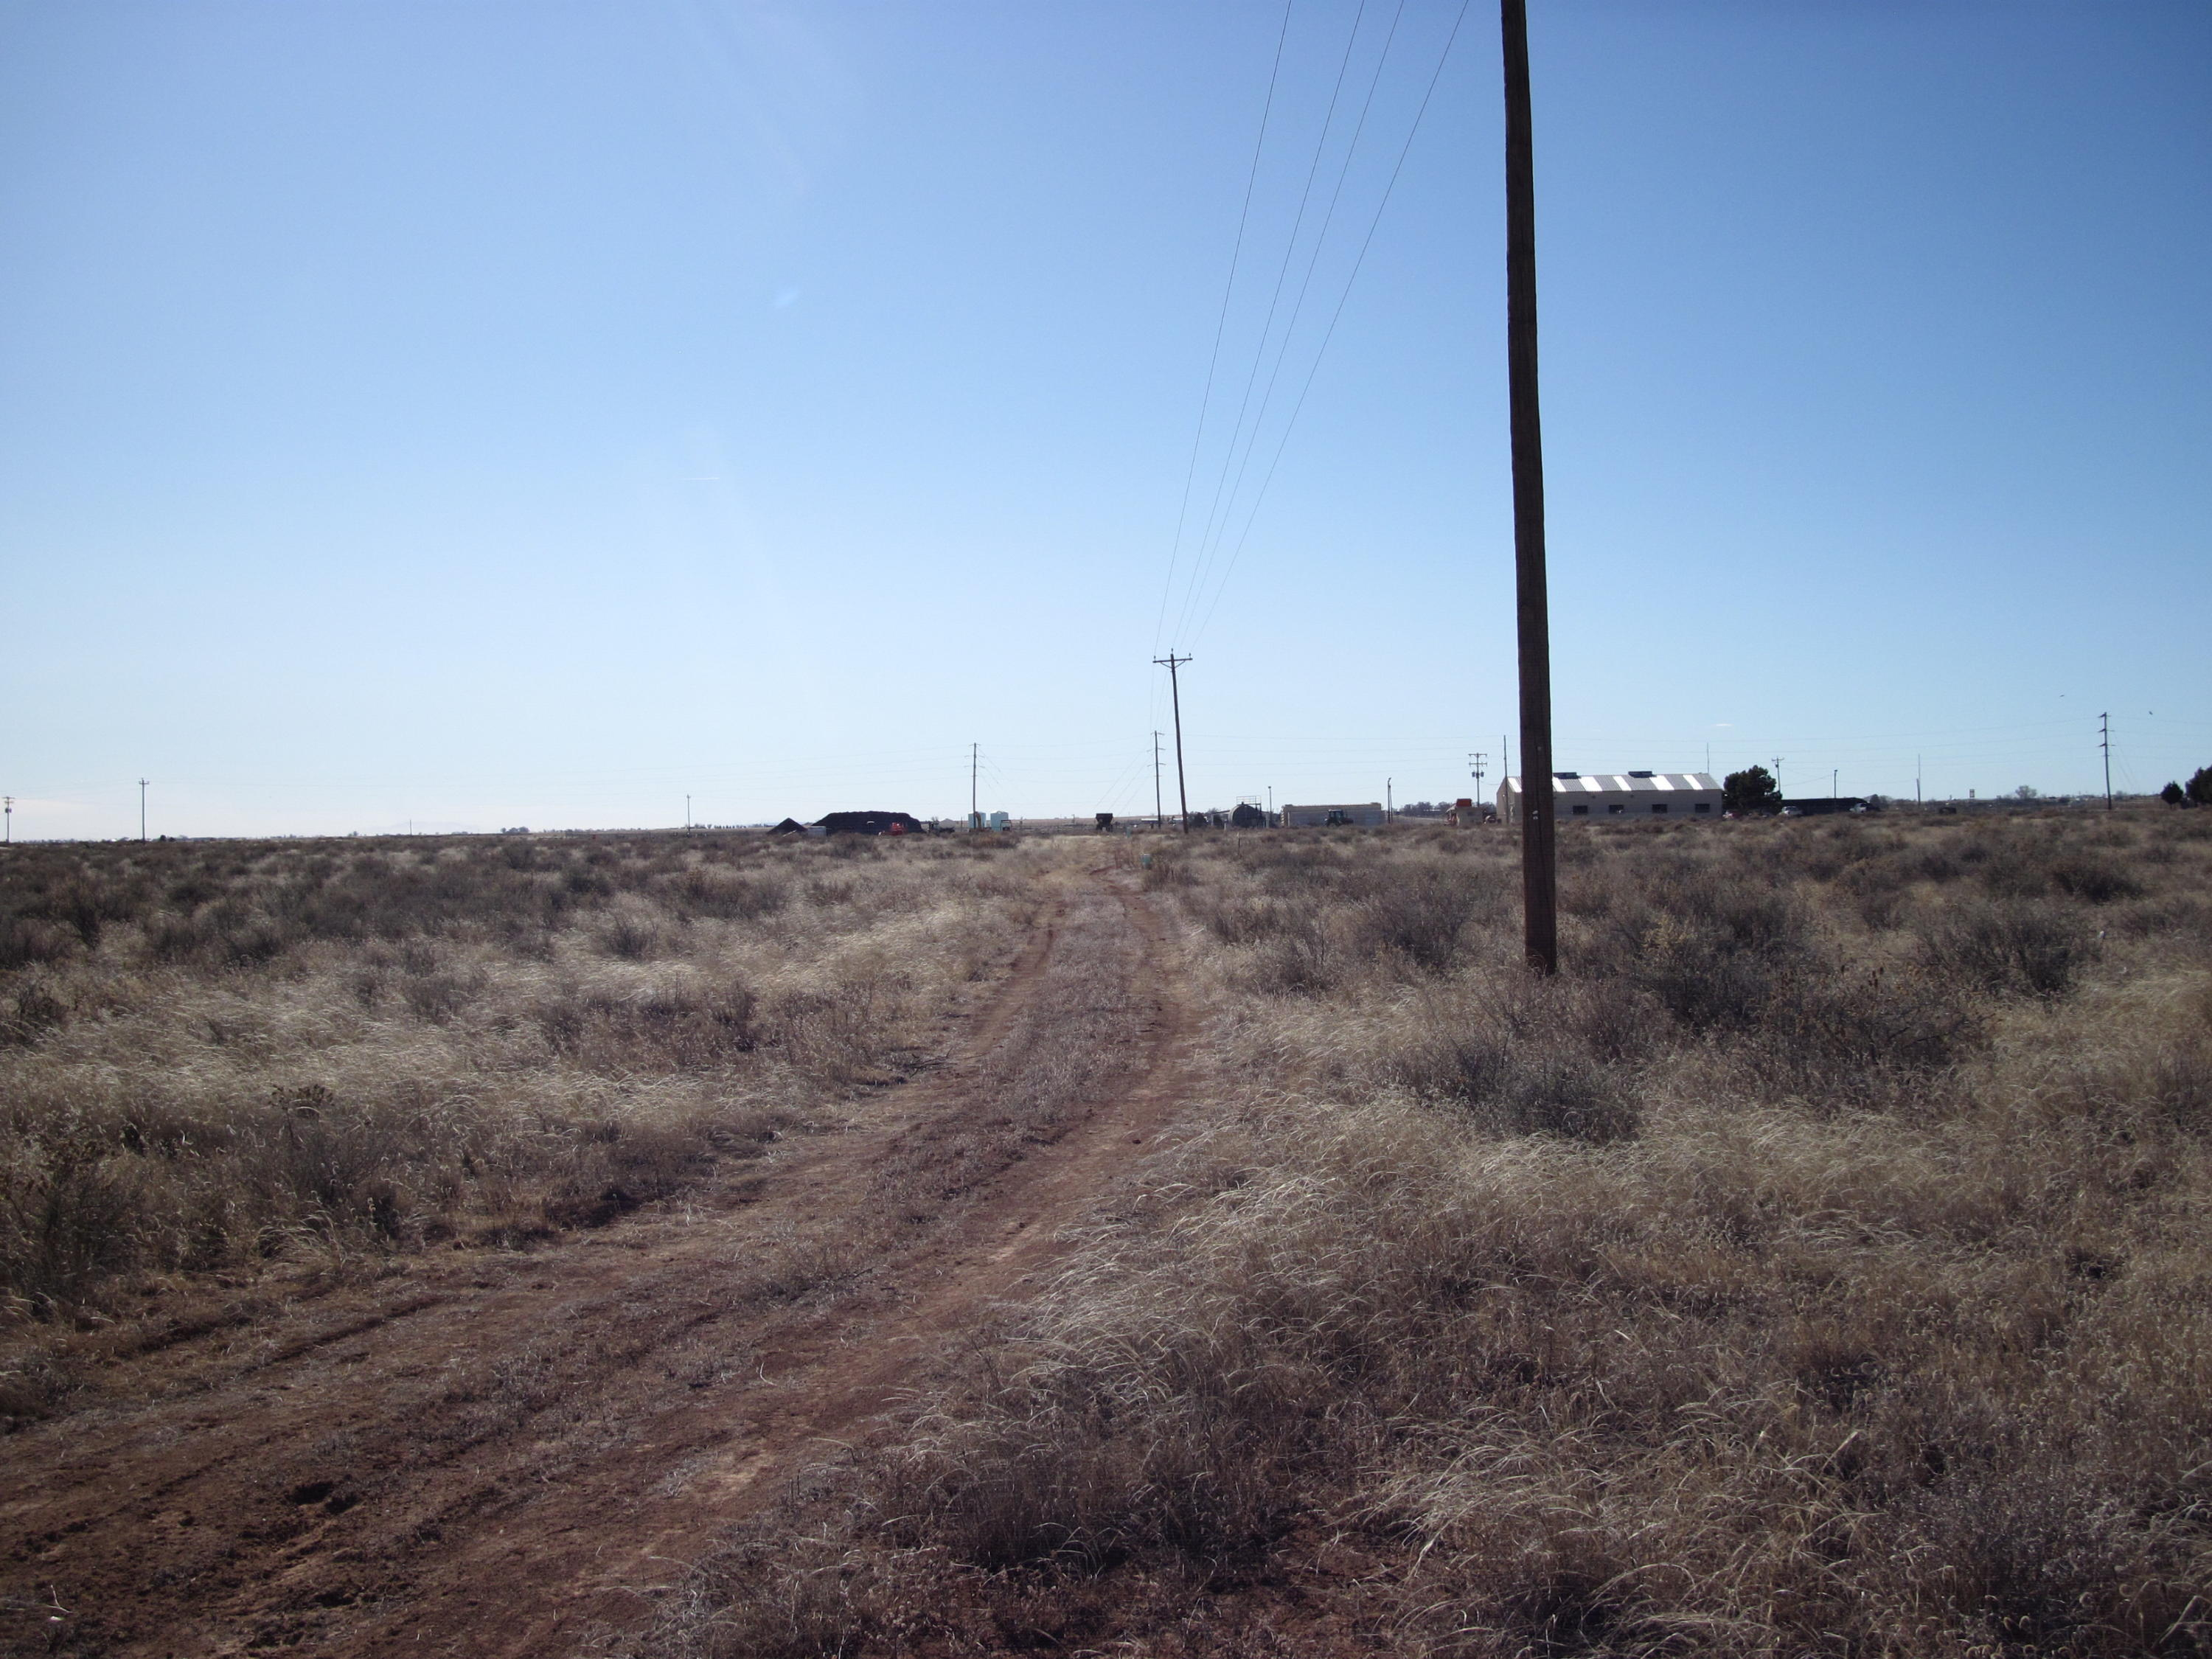 Santa Fe Avenue, Moriarty, NM 87035 - Moriarty, NM real estate listing